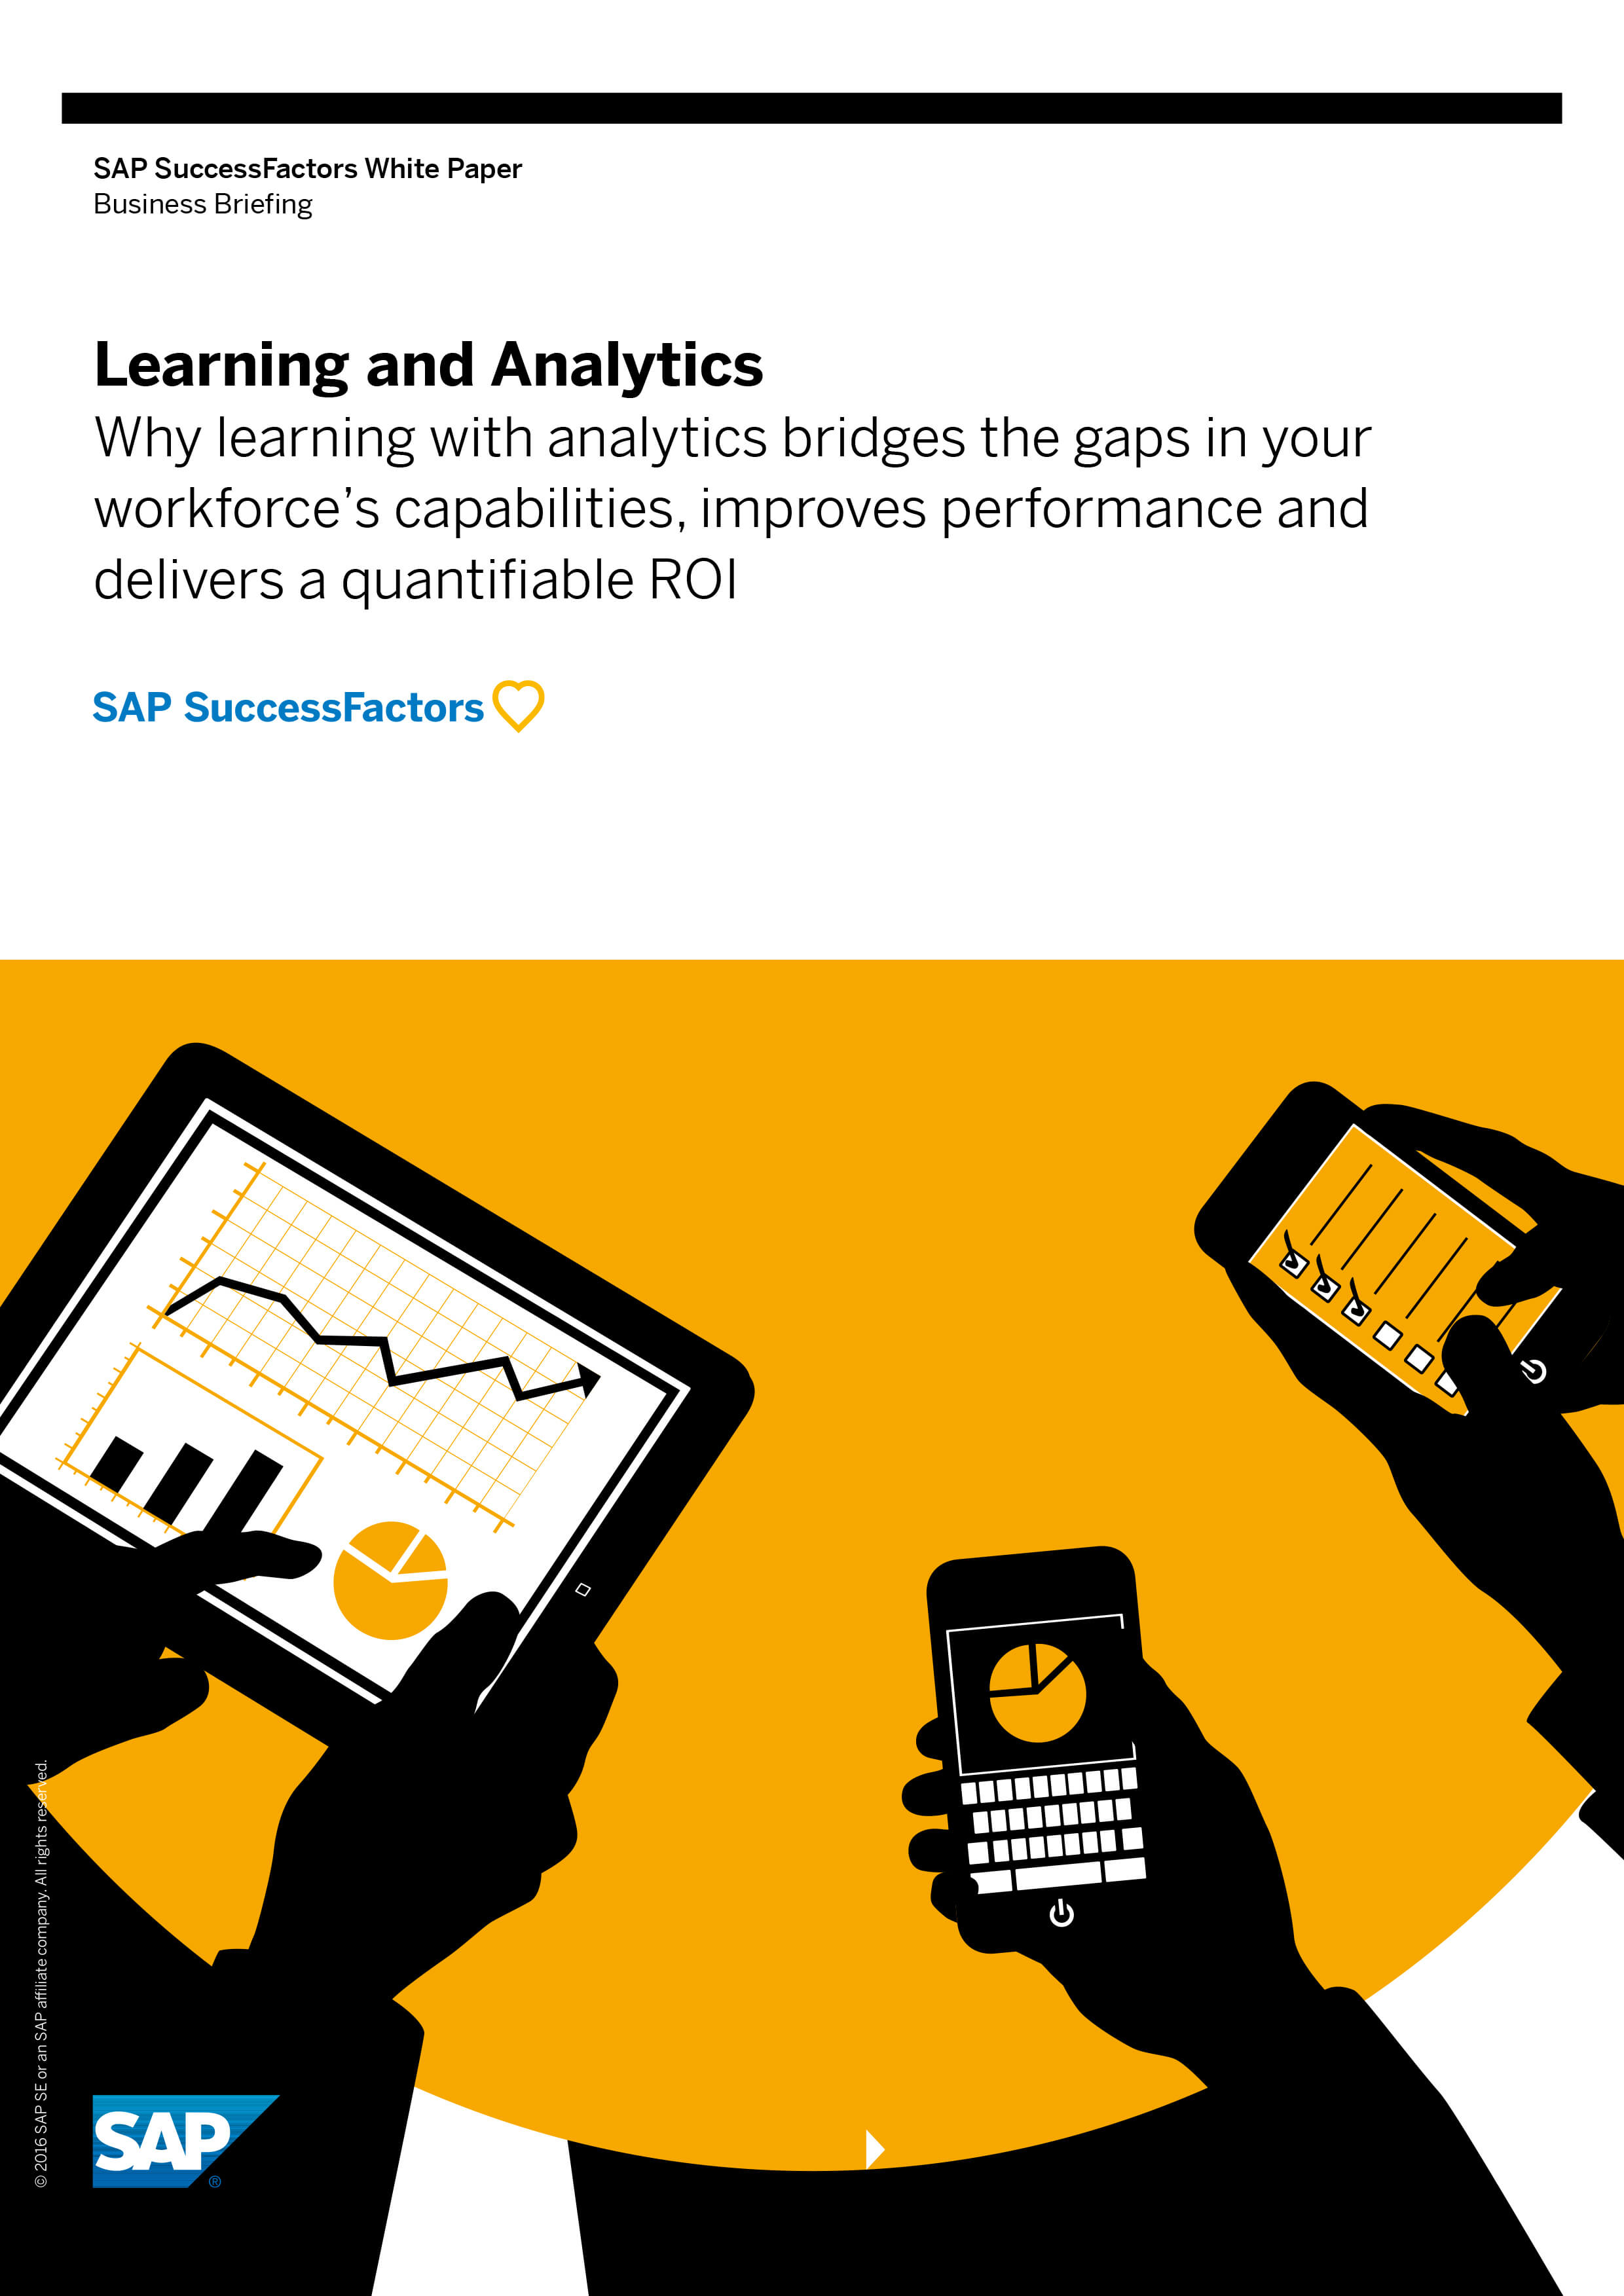 SAP SuccessFactors Whitepaper - Learning - Learning and Analytics